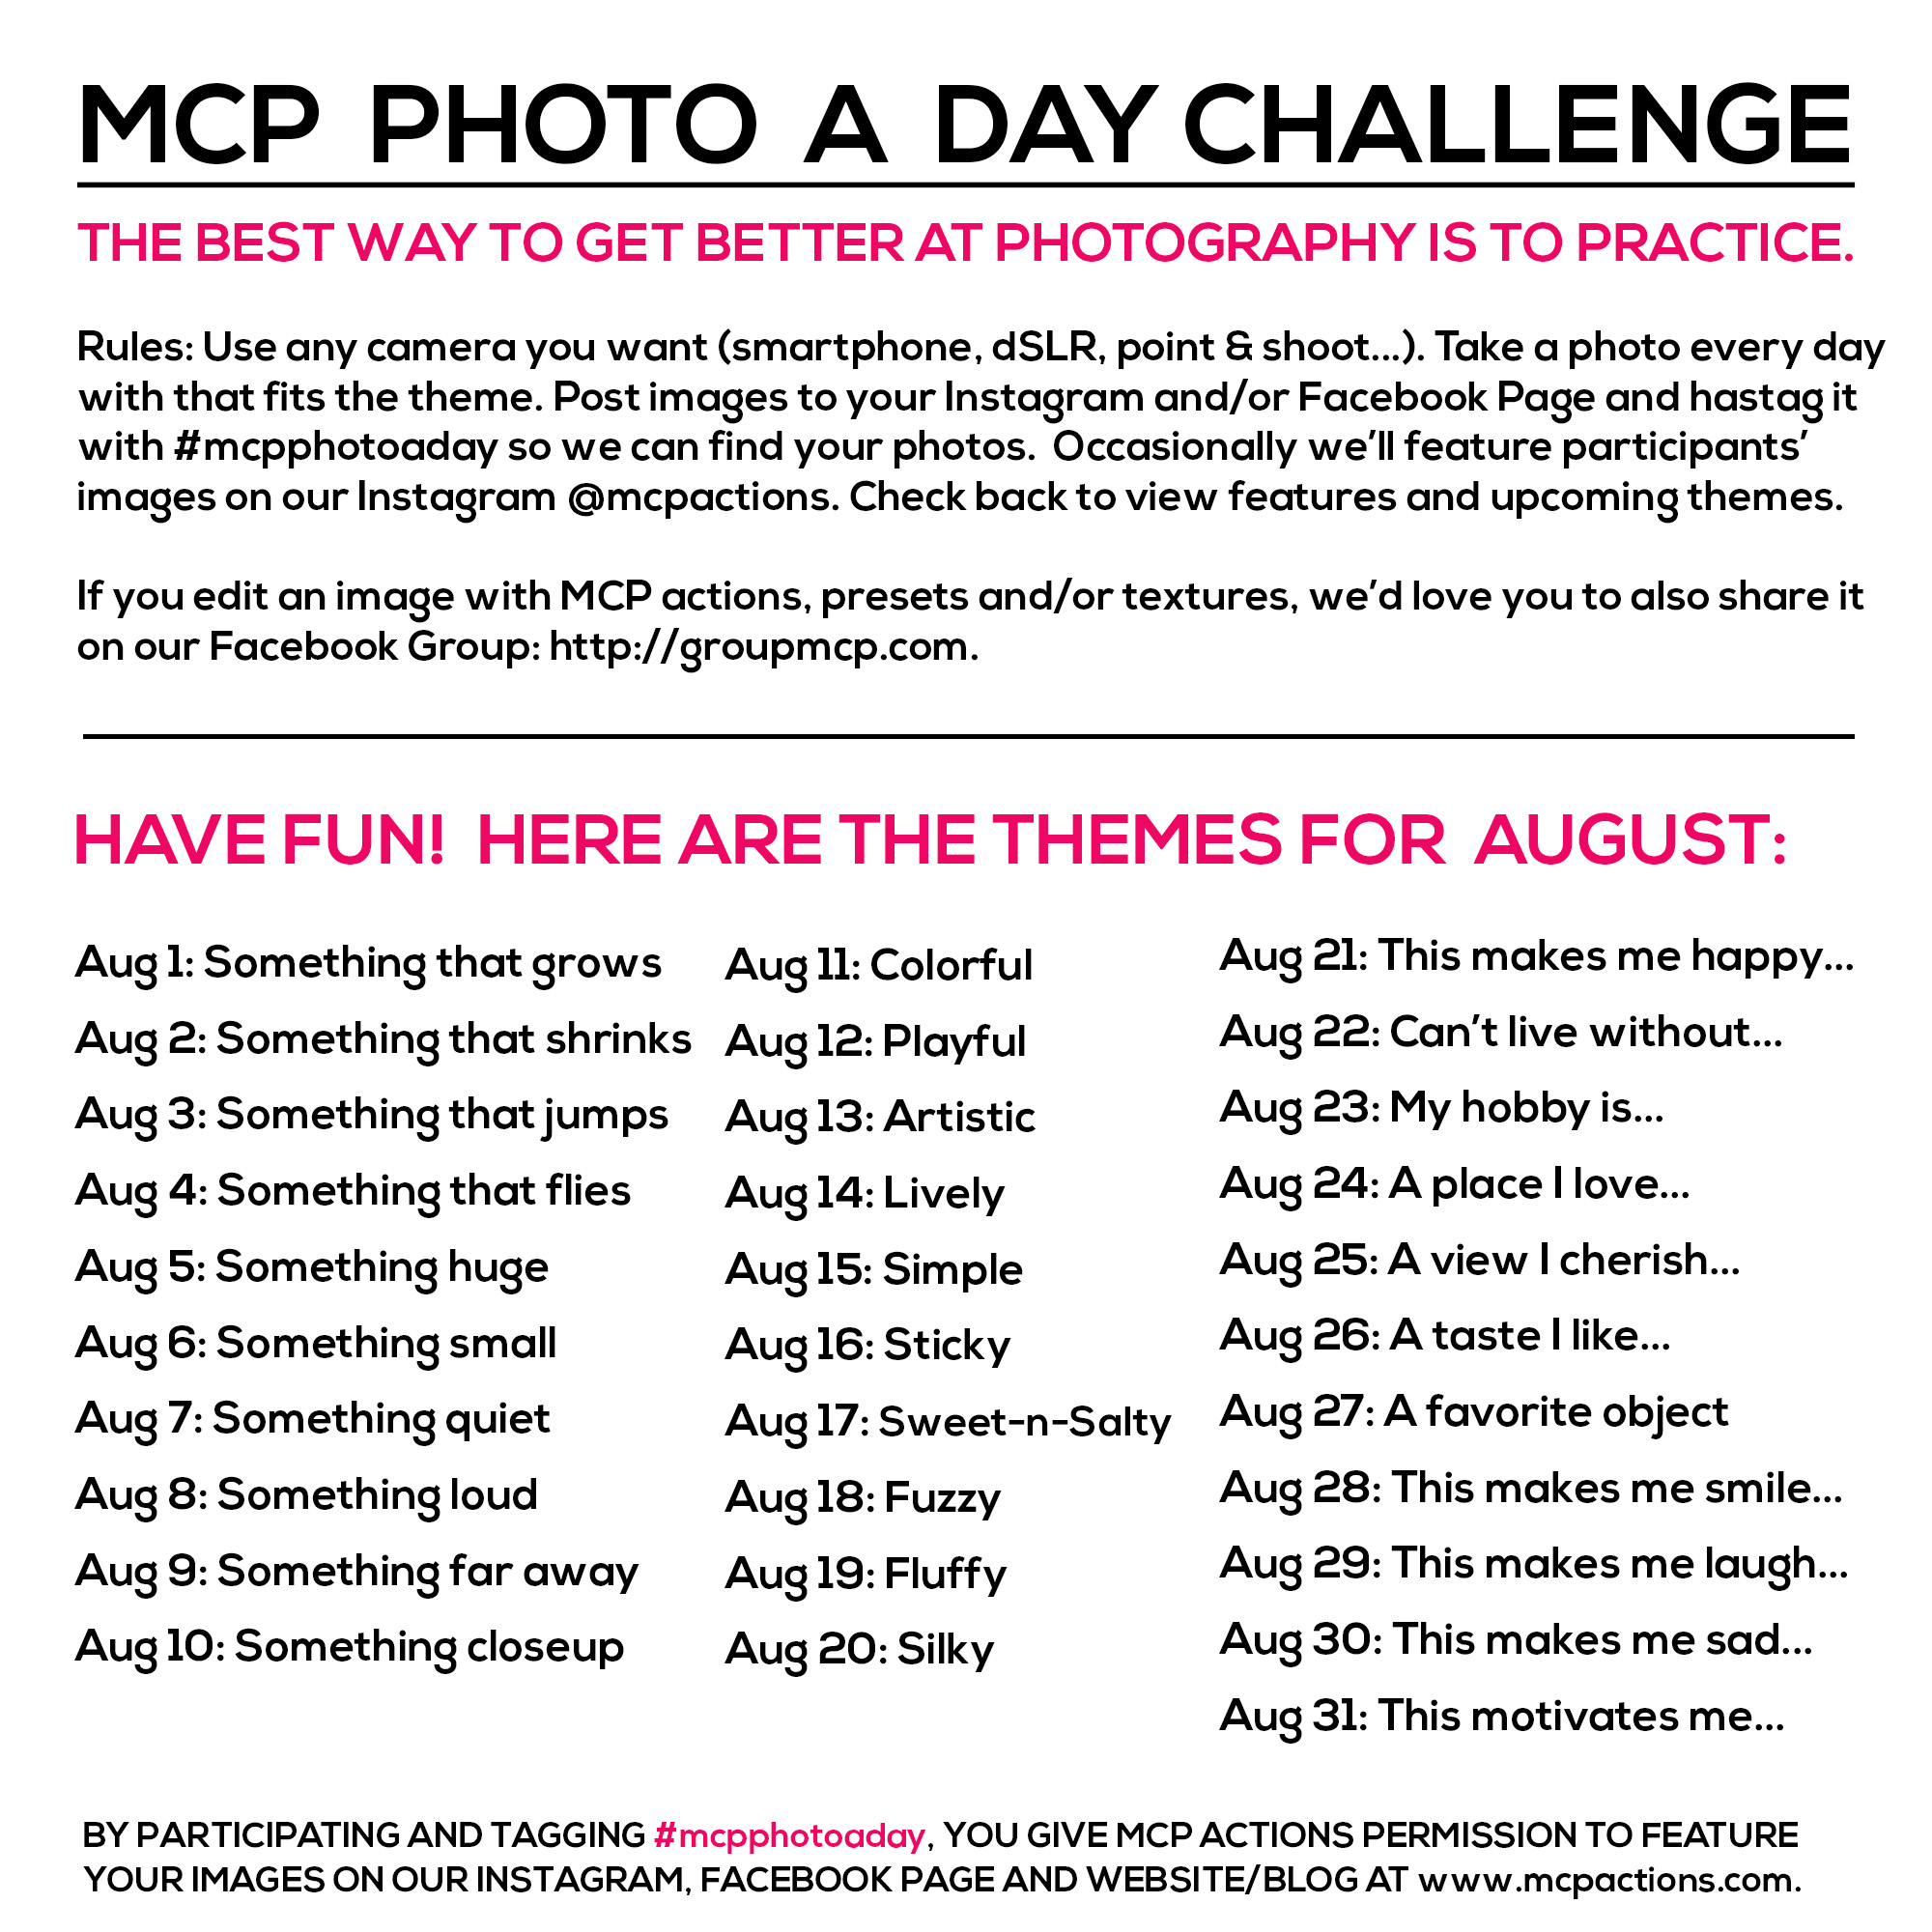 mcpphotoaday-august MCP Photo A Day Challenge: August 2015 Themes Activities Announcements Assignments